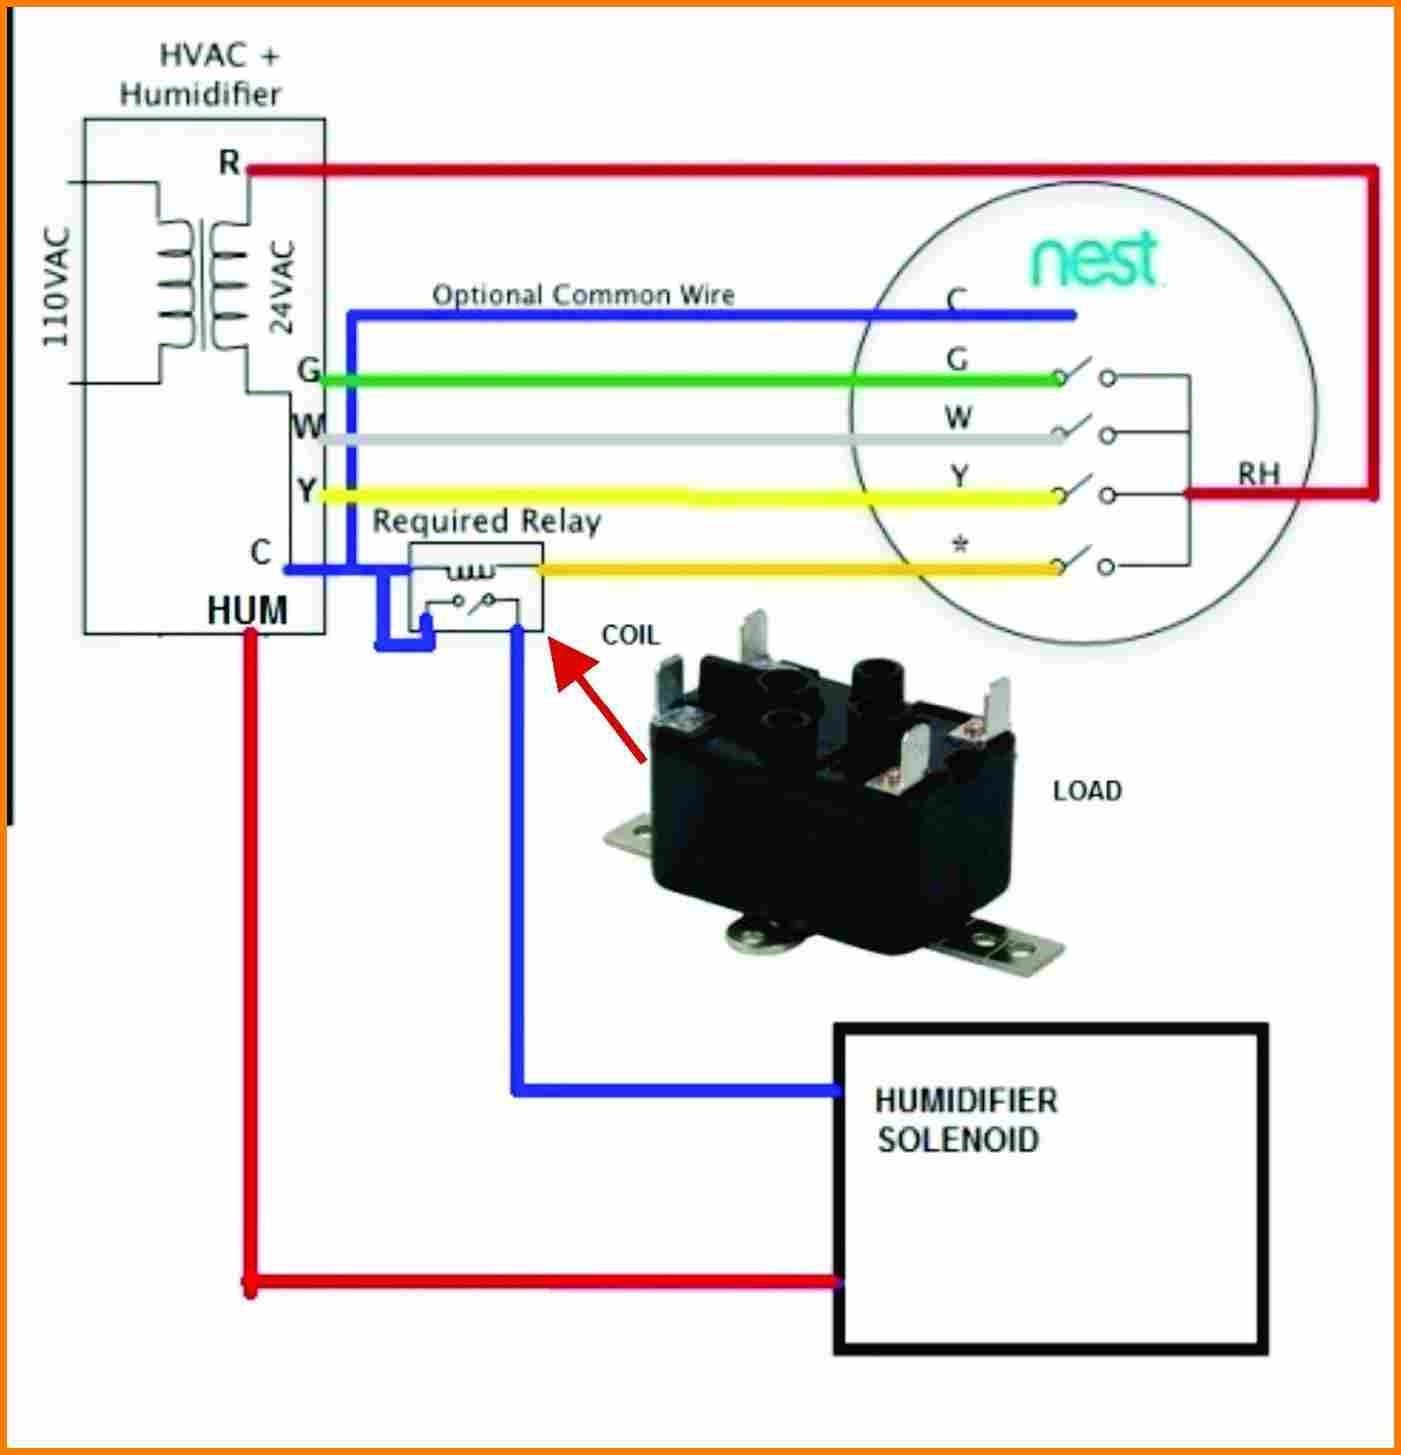 Nest thermostat Wiring Diagram Nest thermostat Wiring Diagram Beautiful Furnace within Wellread Of Nest thermostat Wiring Diagram